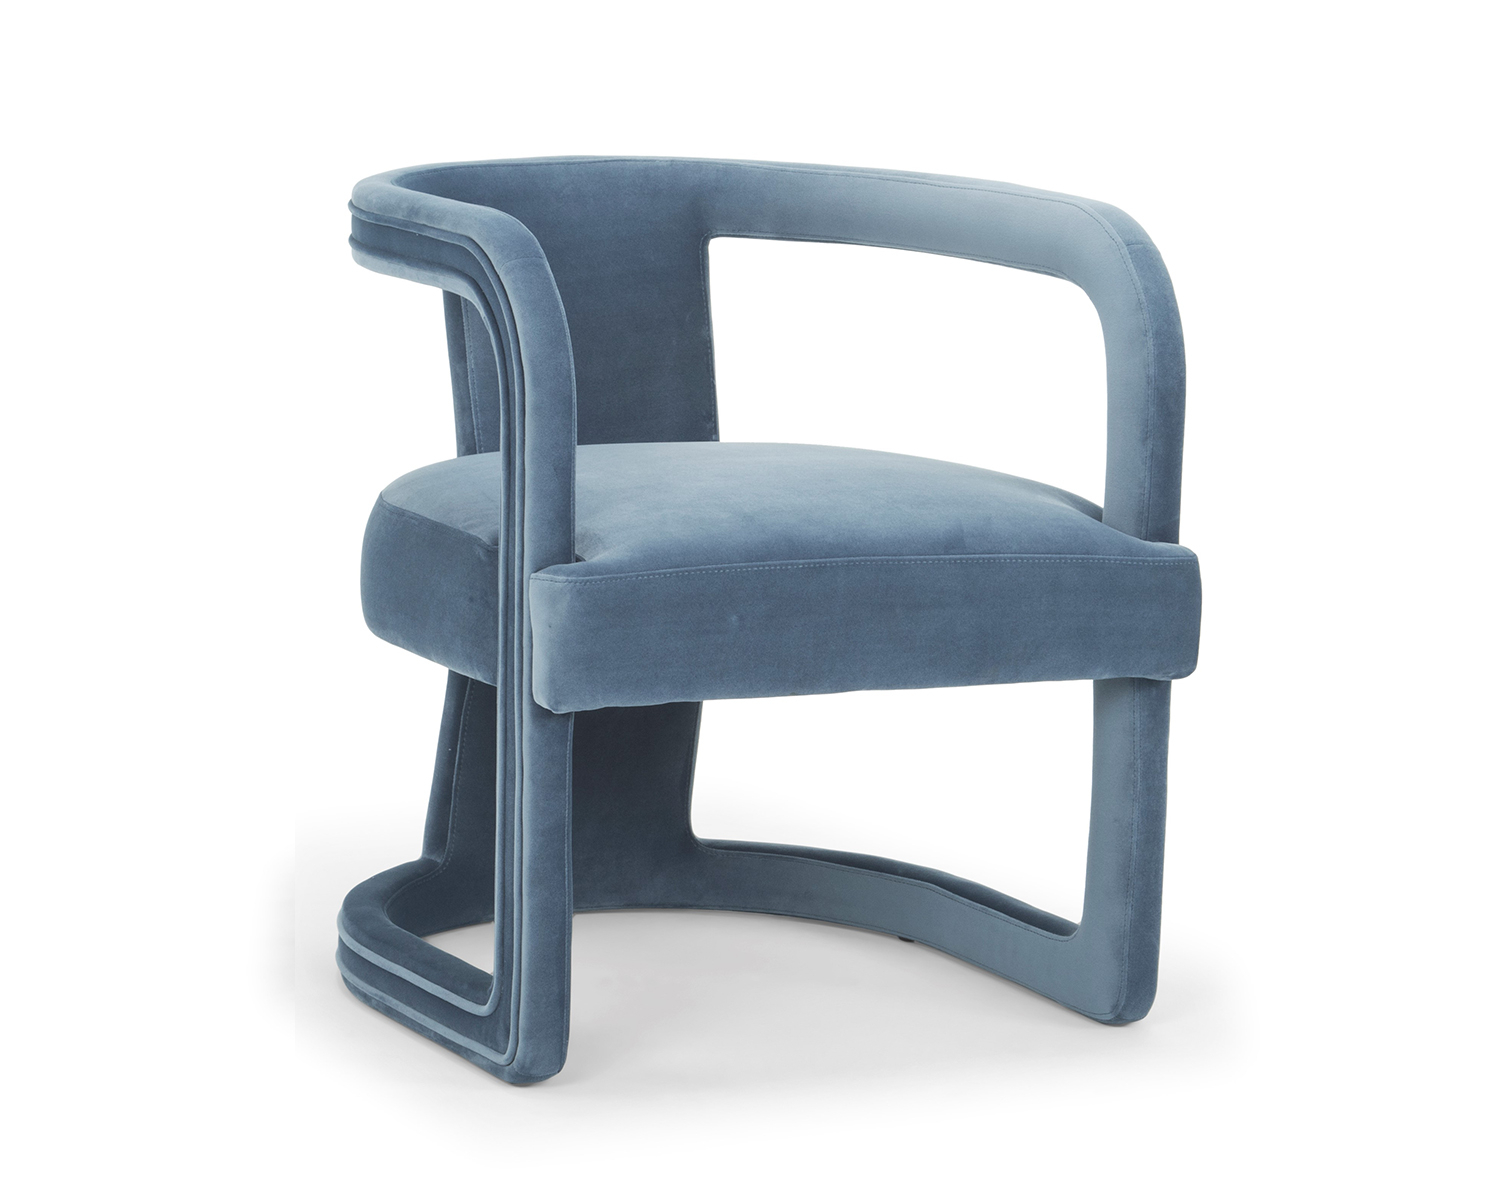 Rory – Urbia Furniture Throughout Rory Sofa Chairs (Image 12 of 25)